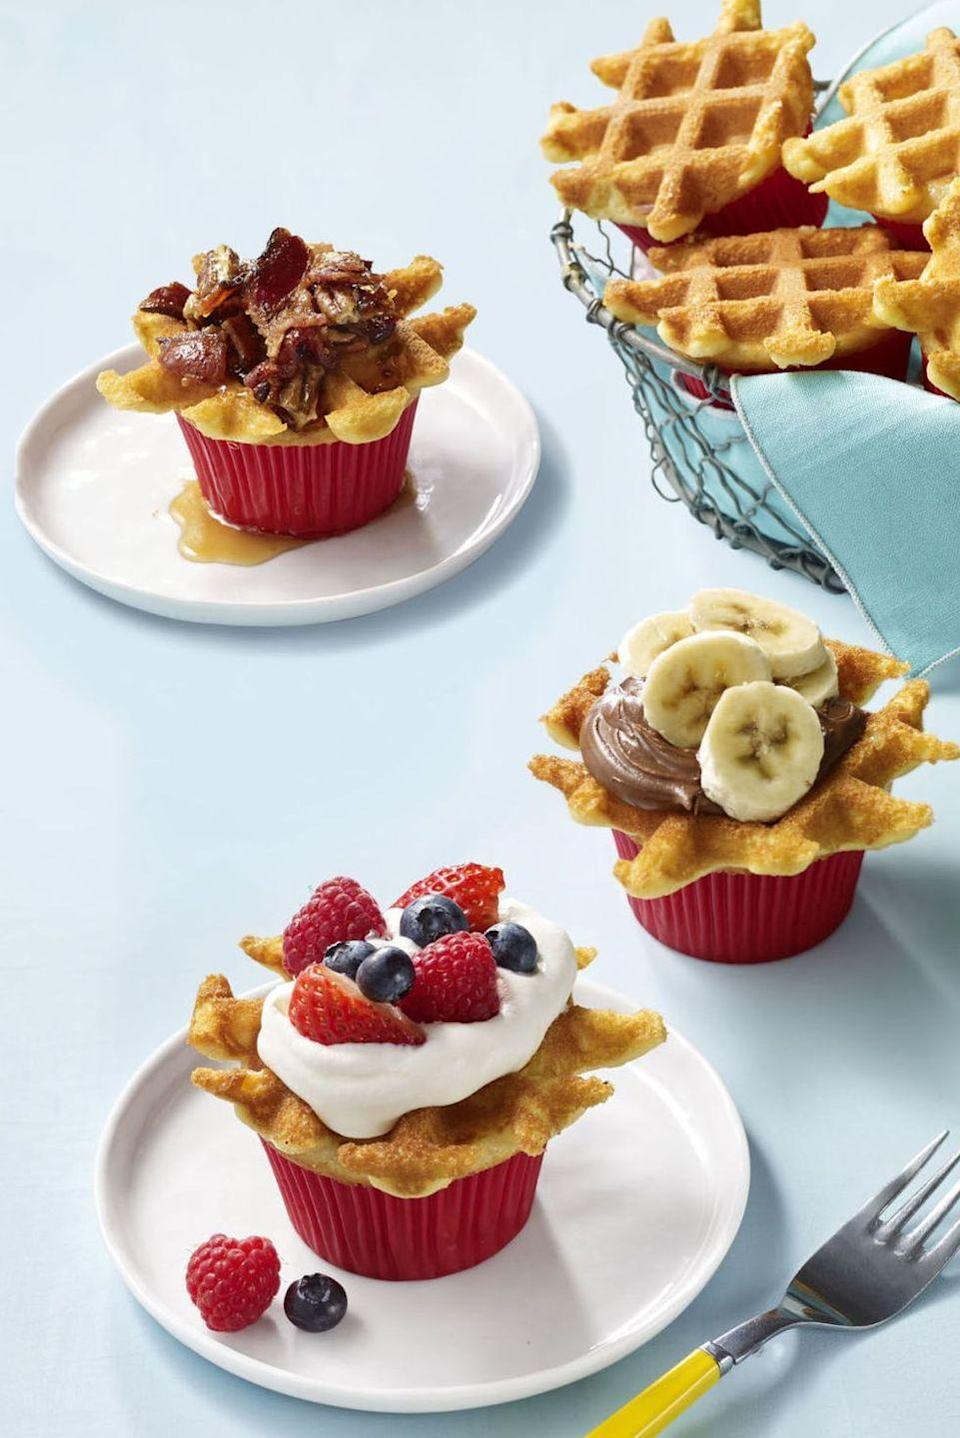 "<p>Here's your official excuse to eat dessert for breakfast: Cupcake batter baked in a waffle iron creates fun treats that are even better with a drizzle of maple syrup!</p><p><em><a href=""https://www.womansday.com/food-recipes/food-drinks/recipes/a57925/wafflecakes-recipe/"" rel=""nofollow noopener"" target=""_blank"" data-ylk=""slk:Get the recipe from Woman's Day »"" class=""link rapid-noclick-resp"">Get the recipe from Woman's Day »</a></em></p>"